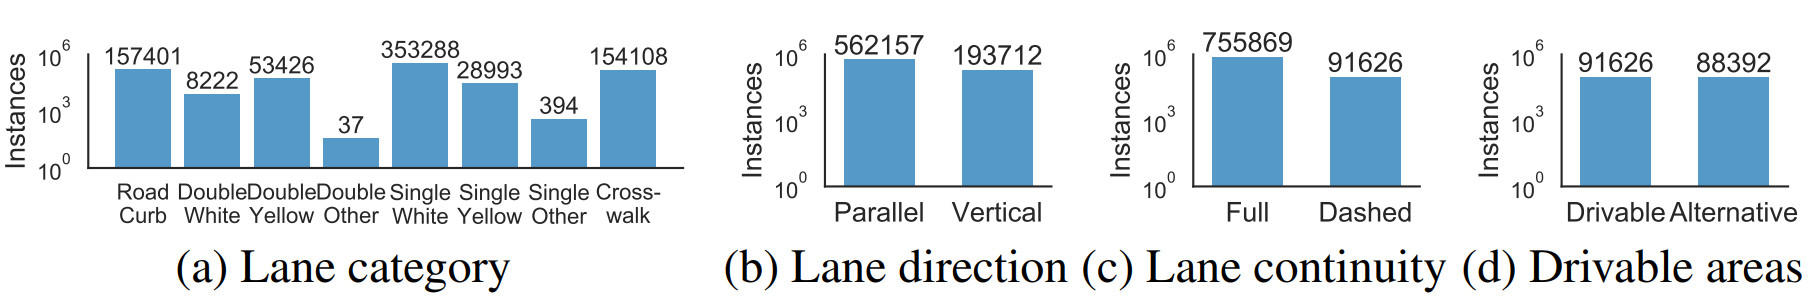 BDD100K Lane Markings Instances